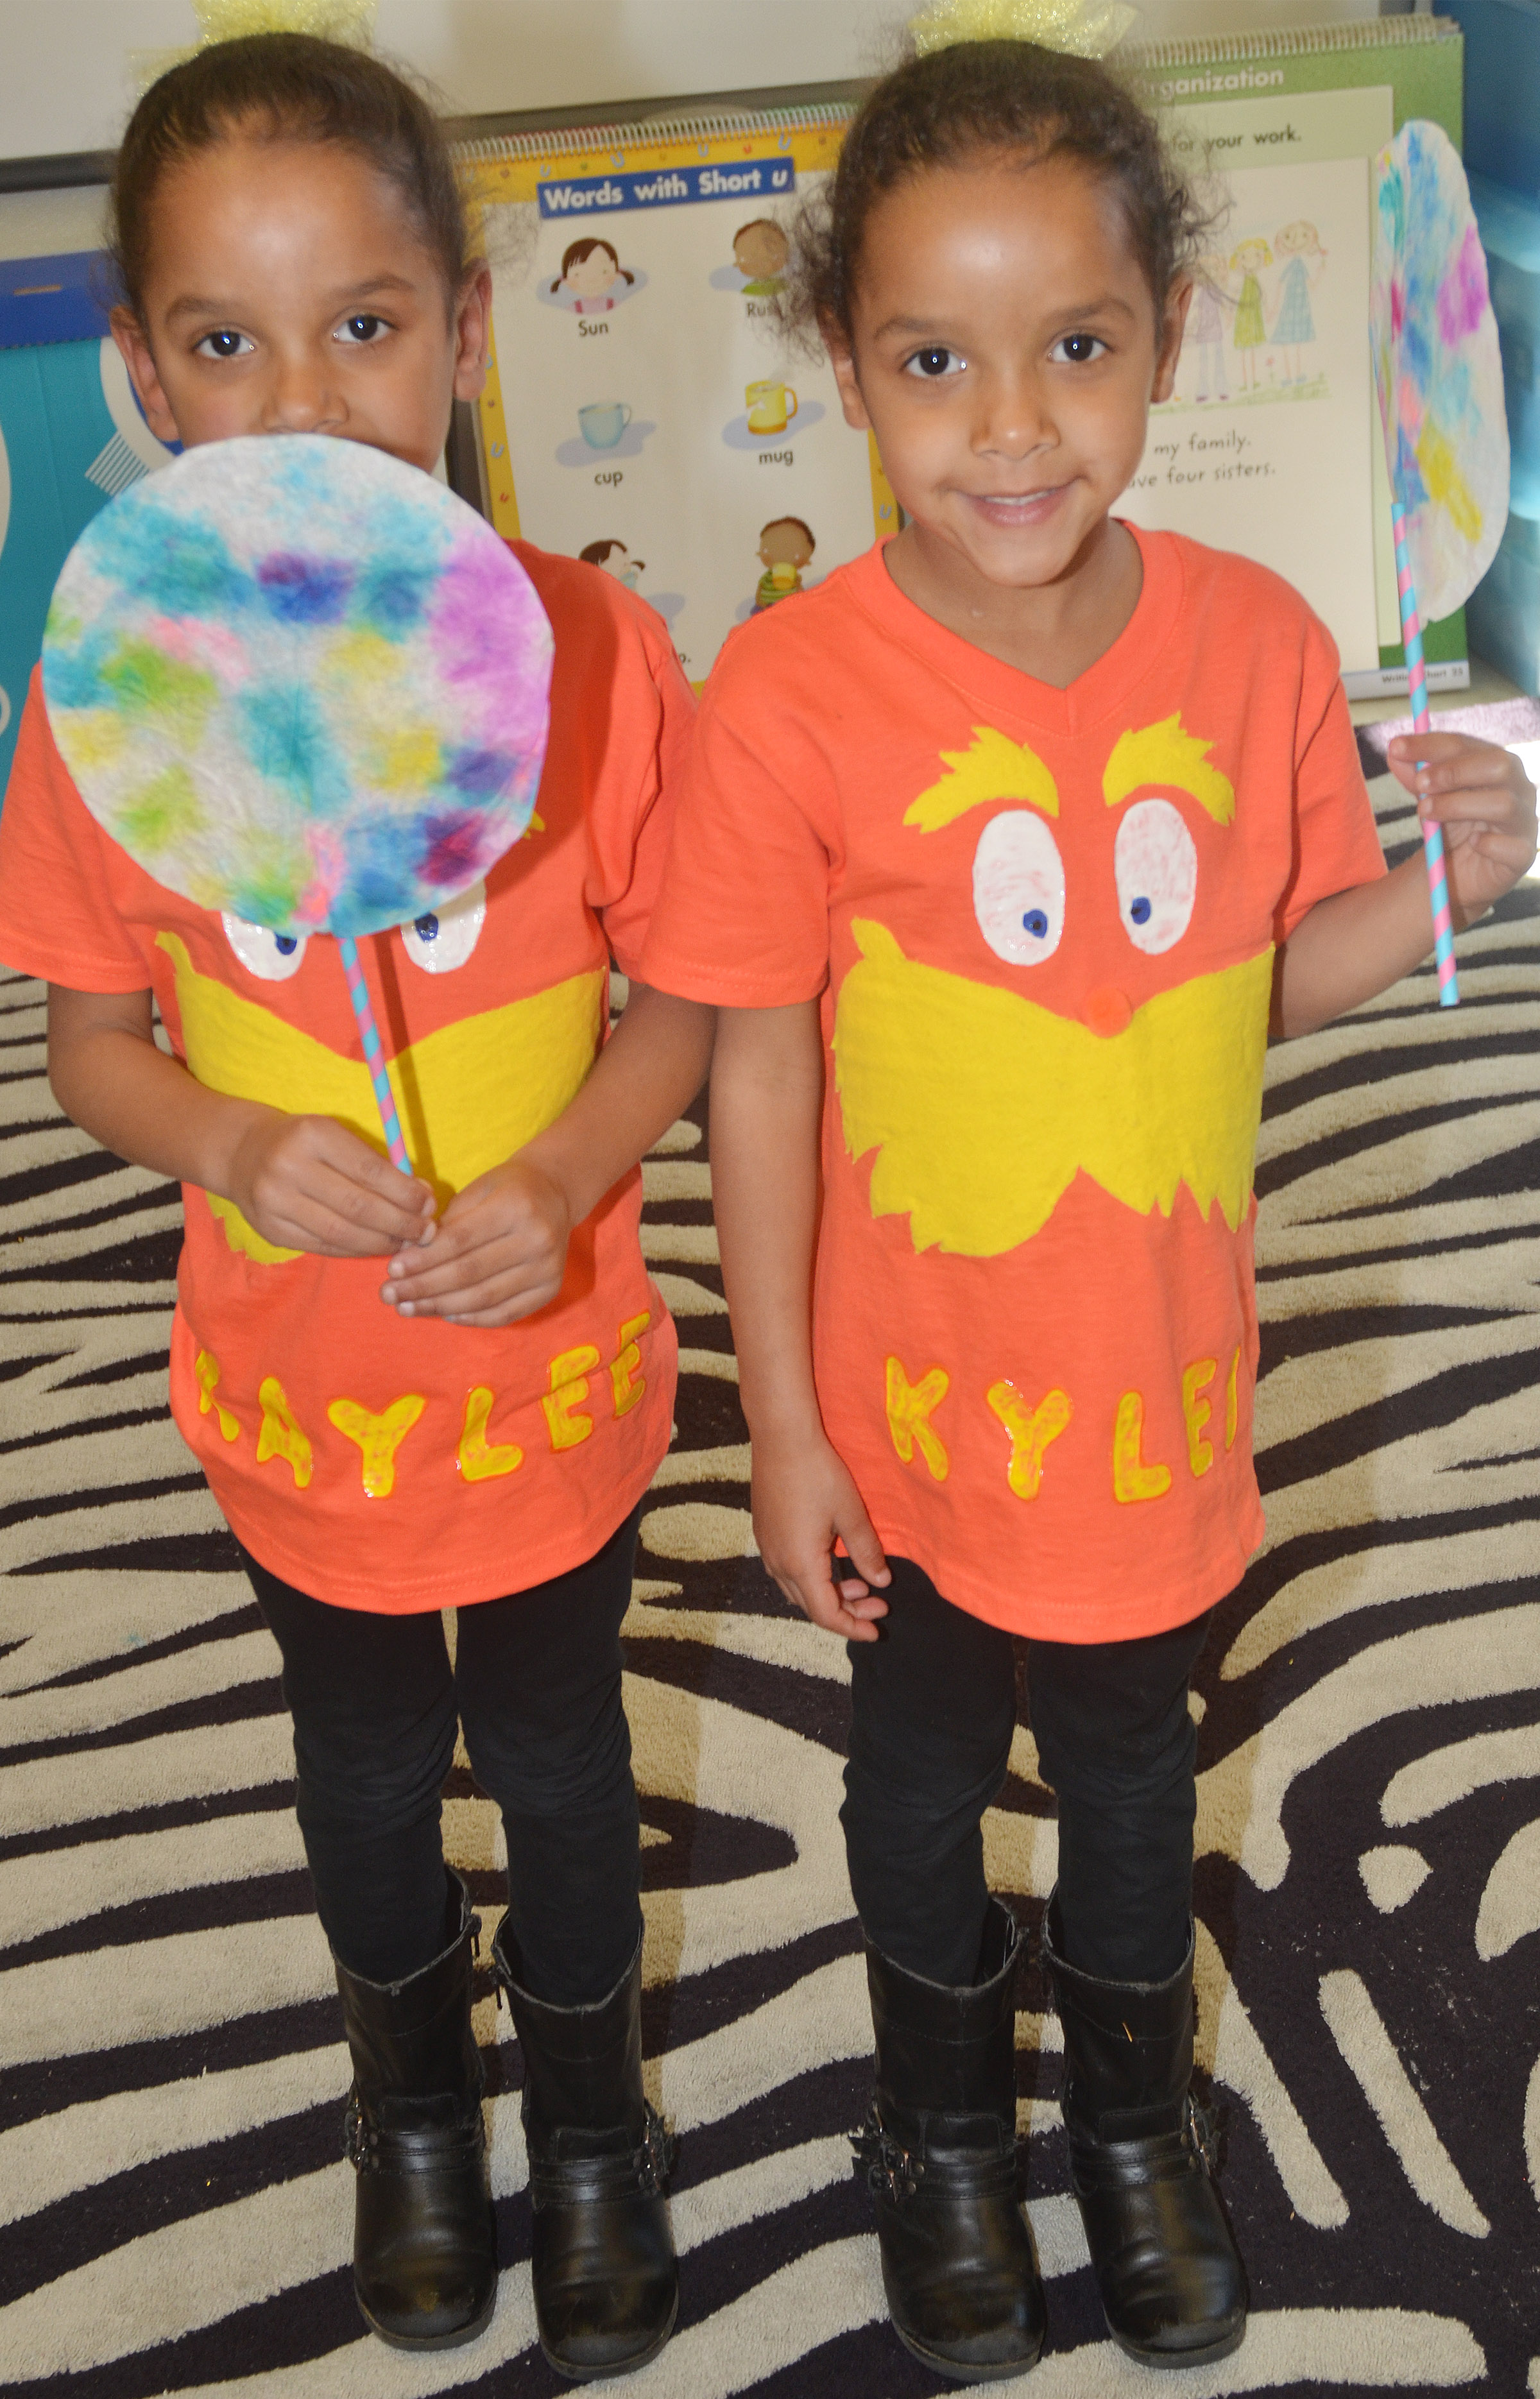 CES kindergartener Kaylee Thompson, at left, and her twin sister Kylei hold their truffula trees.